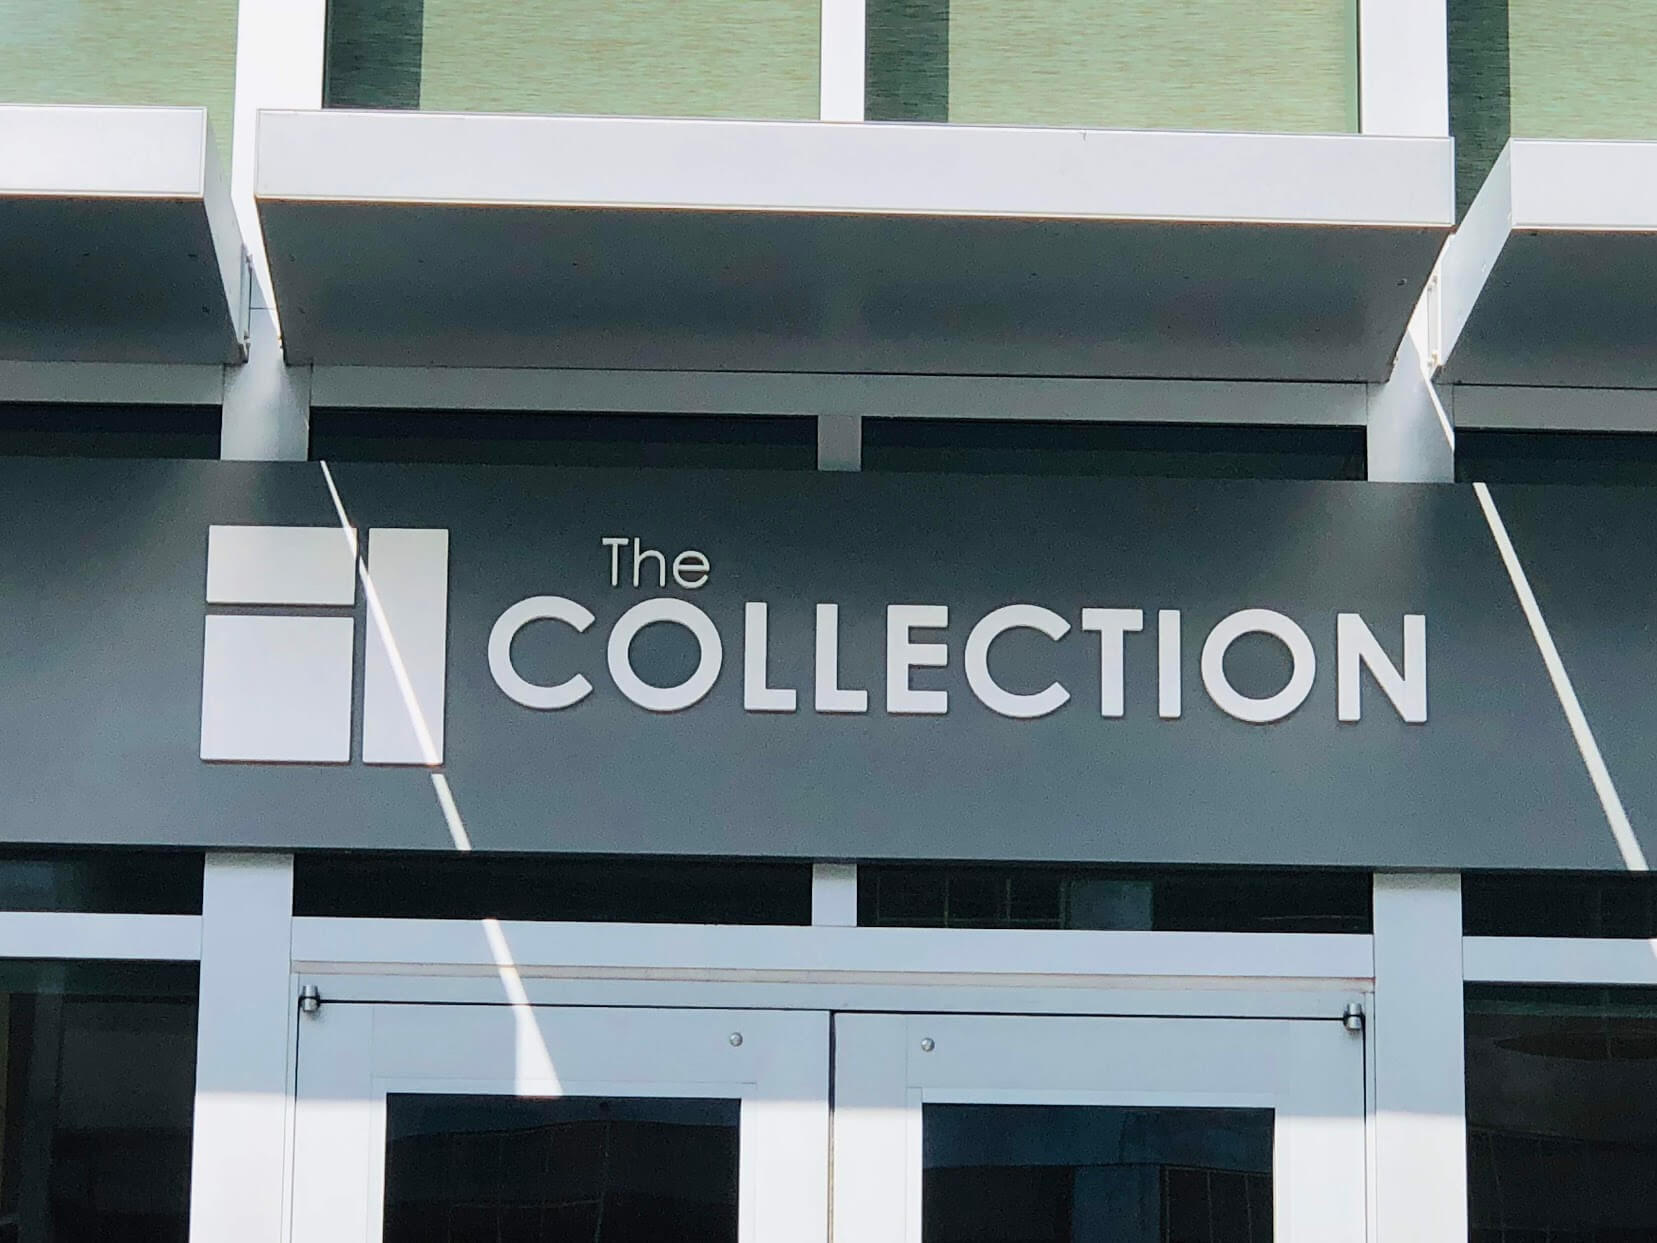 The Collectionの看板